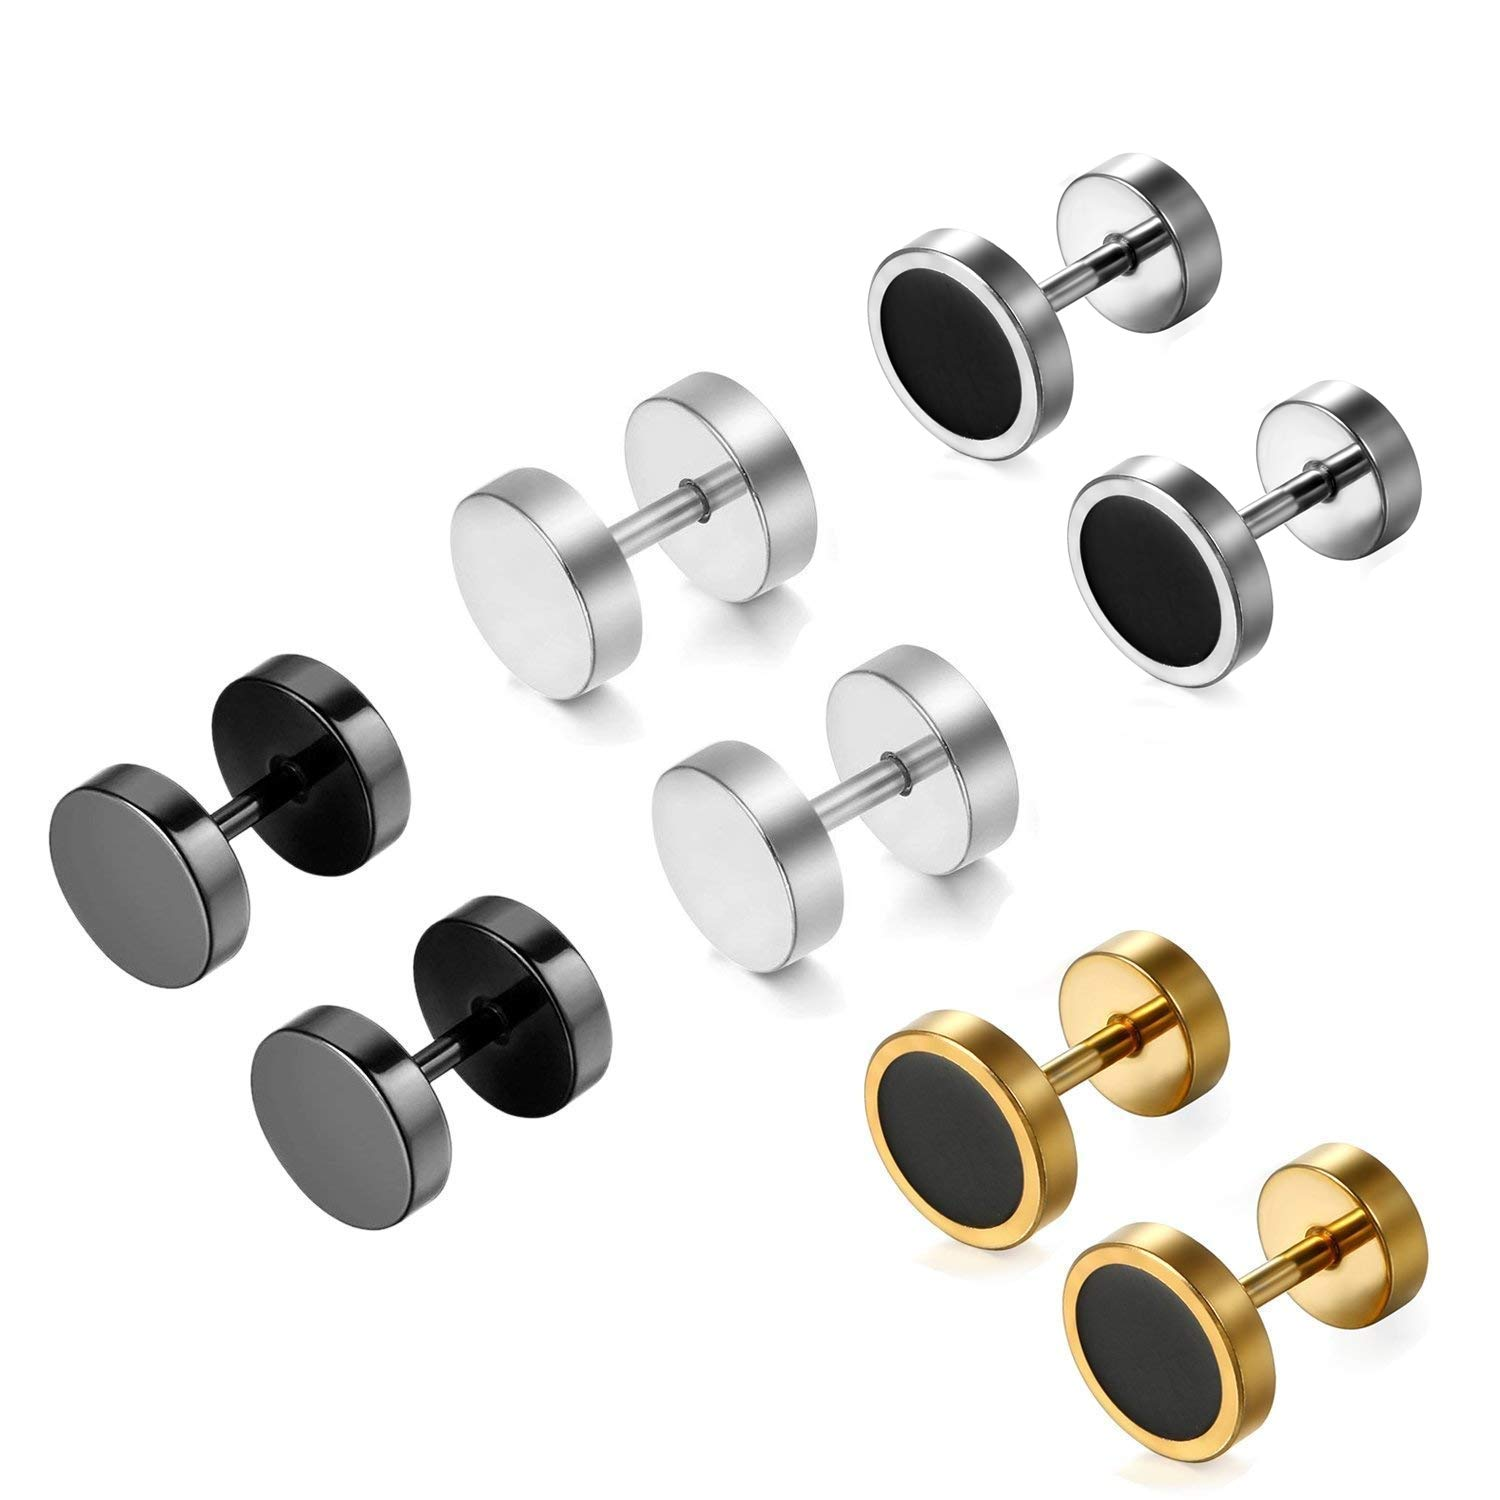 Aroncent 8 Pcs Stainless Steel Men Stud Earing Fake Ear Stretcher Plugs Earrings 8MM Screw Back